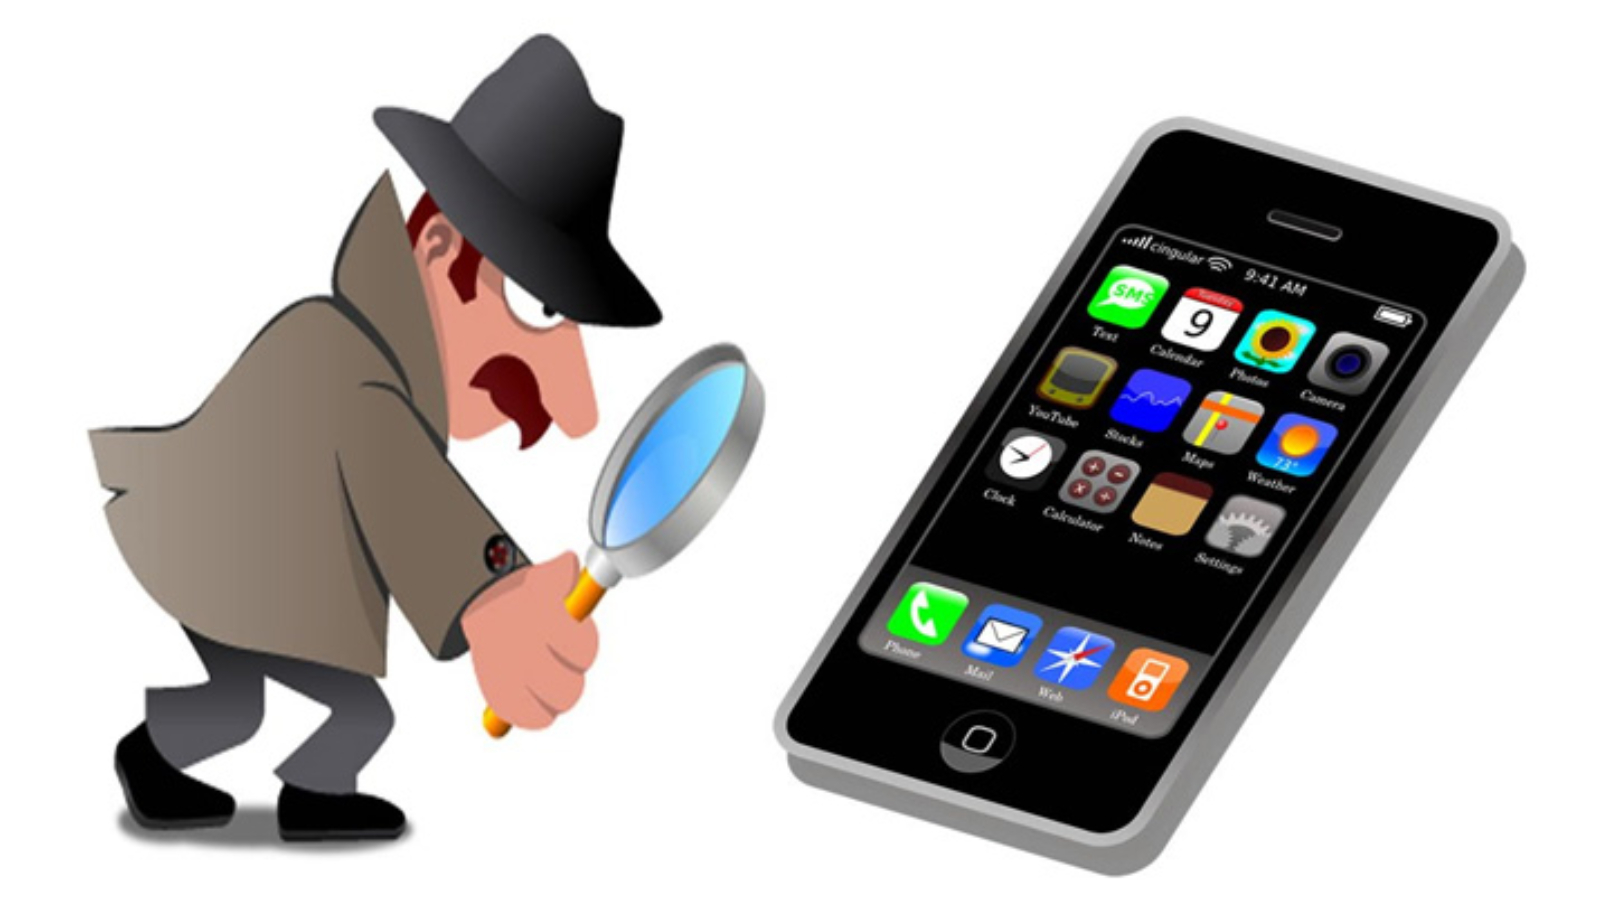 Heres-How-Cell-Phone-Spy-Software-Works-Without-Touching-The-Phone-3